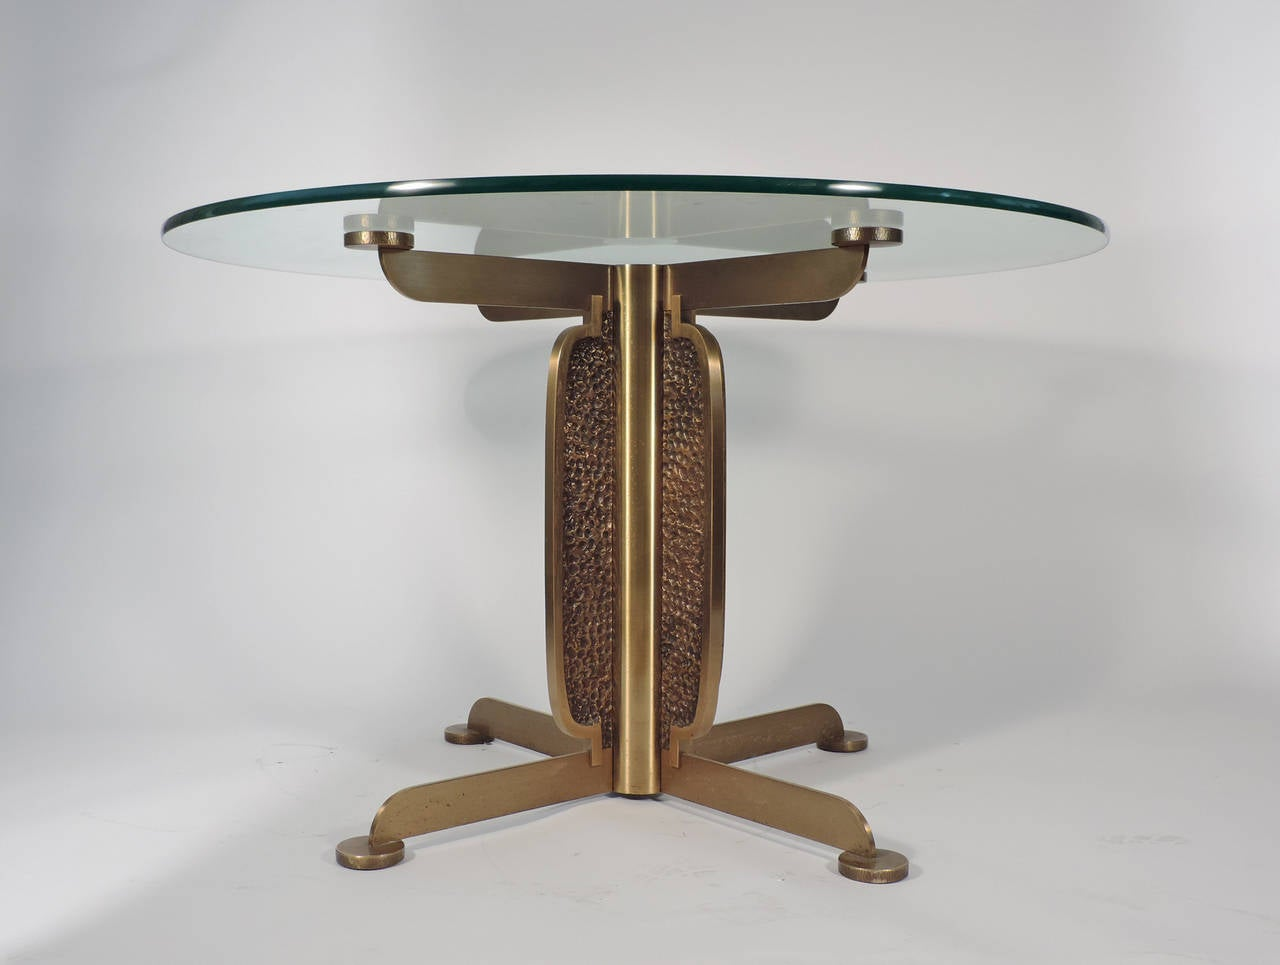 Spectacular luciano frigerio brutalist dining table for for Table 52 oak brook